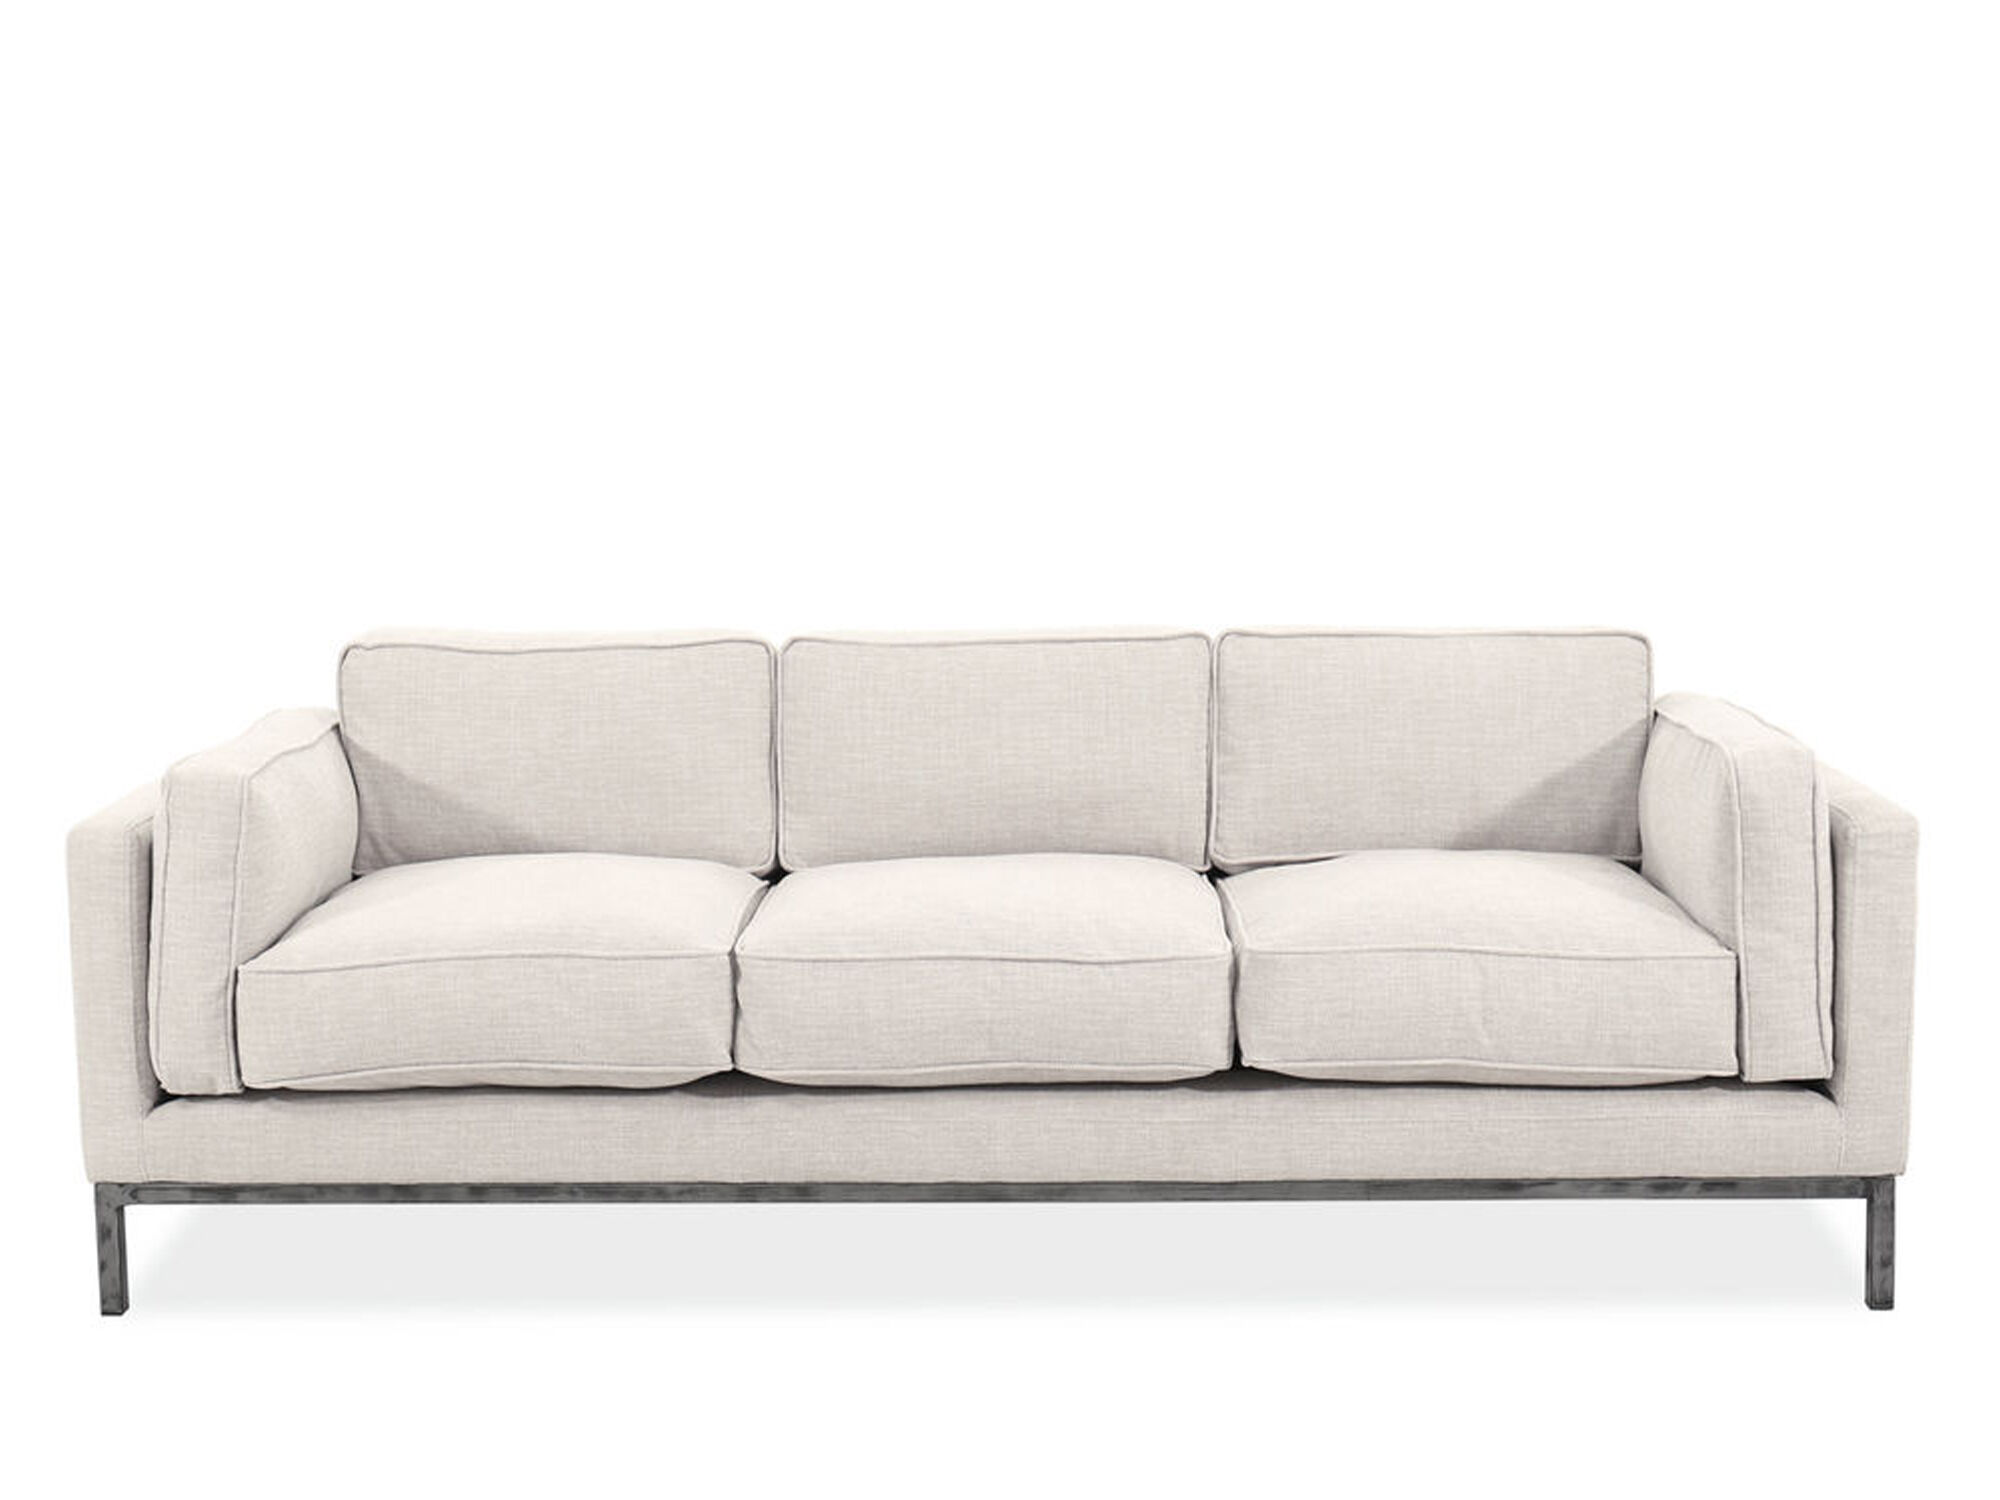 Images 89u0026quot; Contemporary Low Profile Sofa In Beige 89u0026quot;  Contemporary Low Profile Sofa In Beige